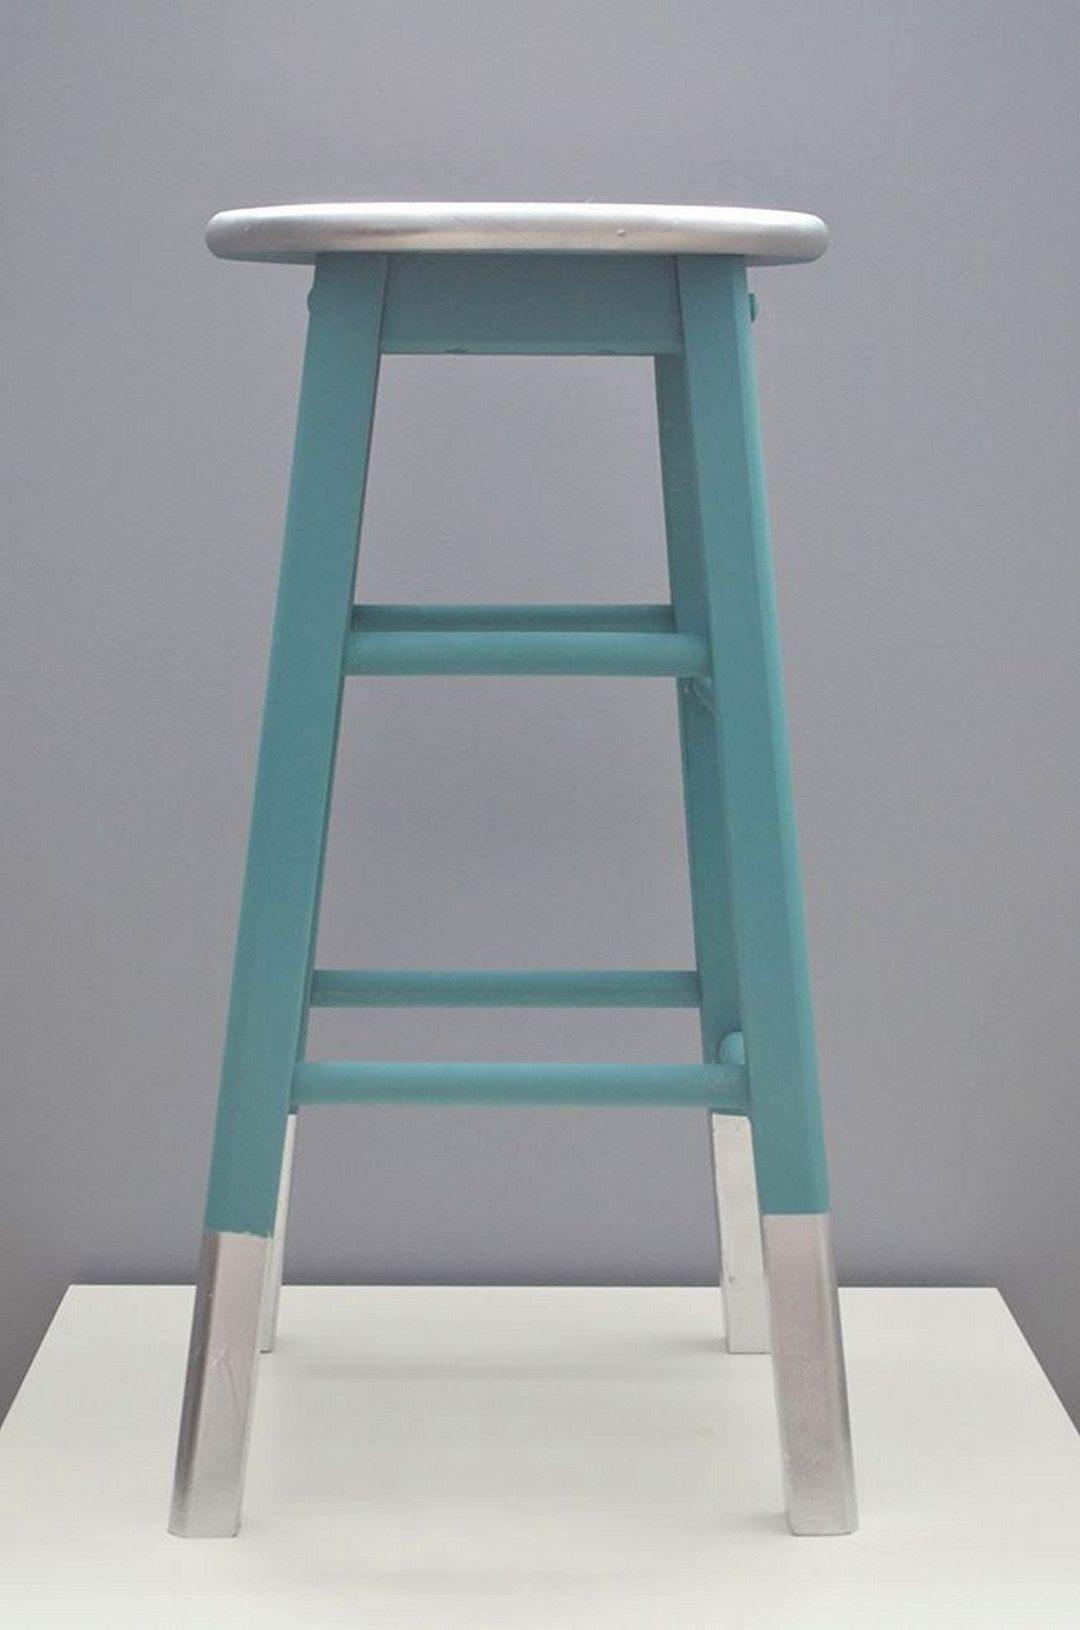 81 Cool Painted Stool Inspirations | Painted stools, Stools and ...